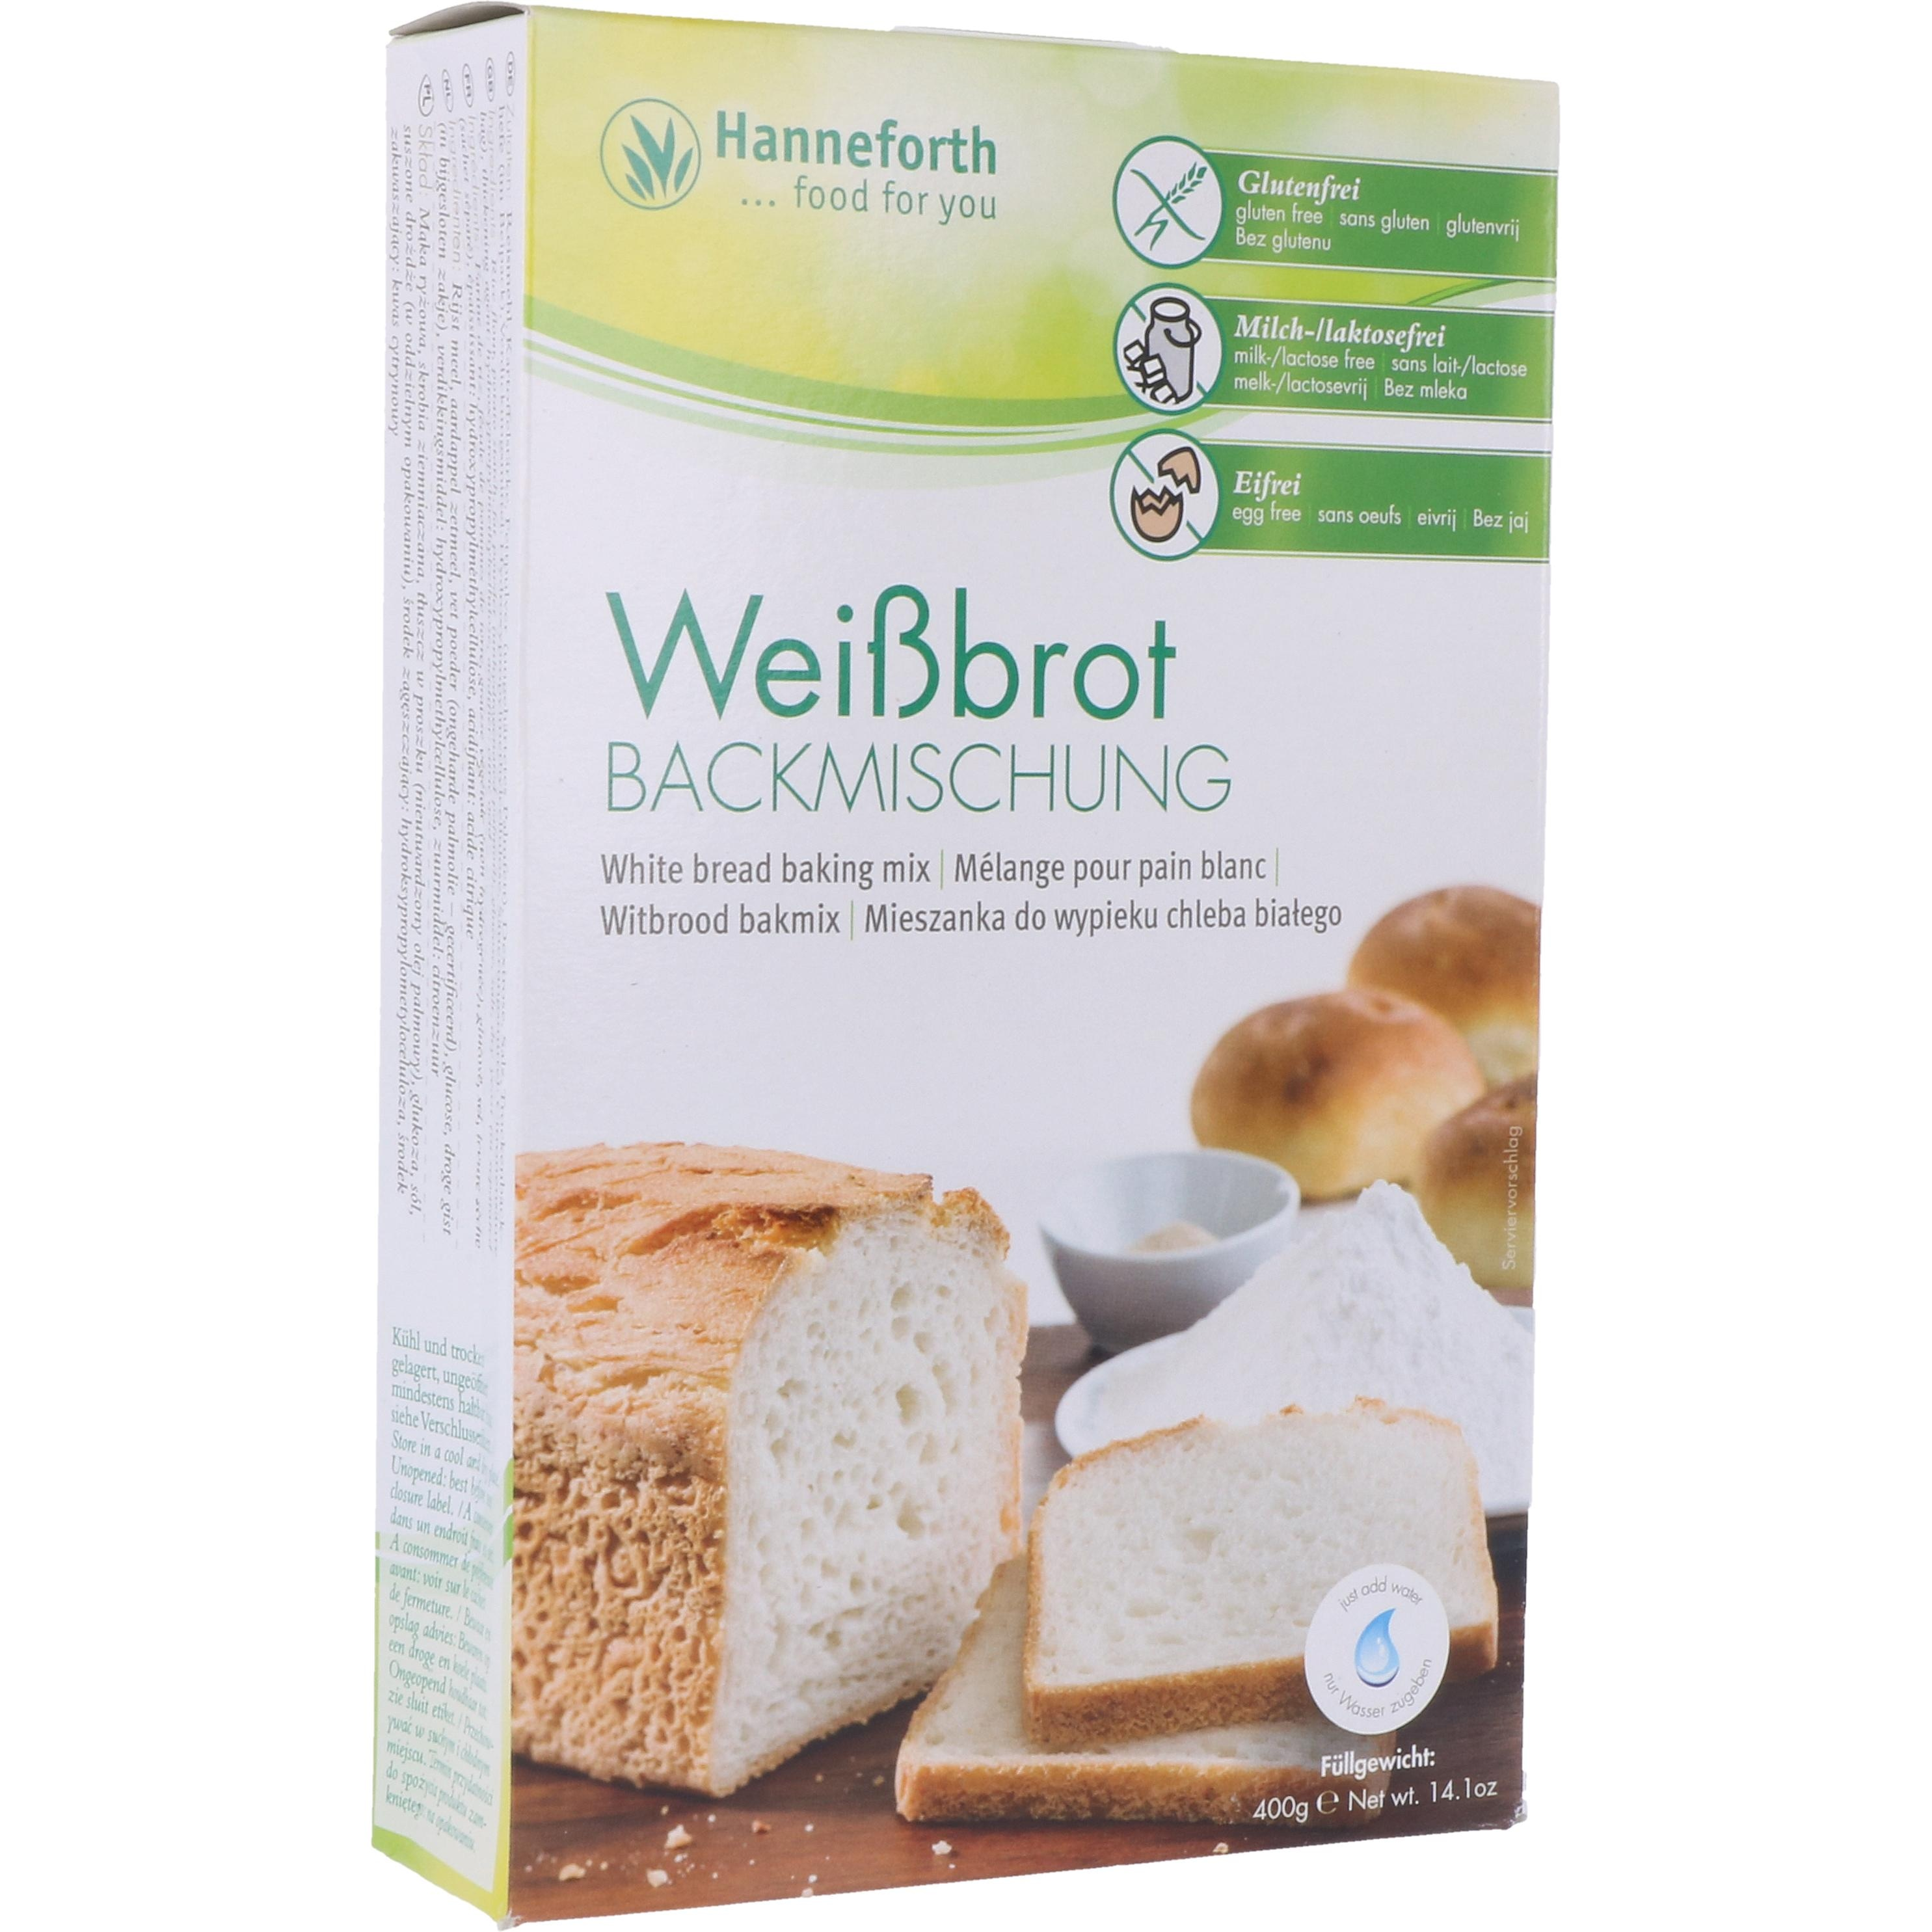 Hanneforth, food for you Backmischung Weißbrot 400g